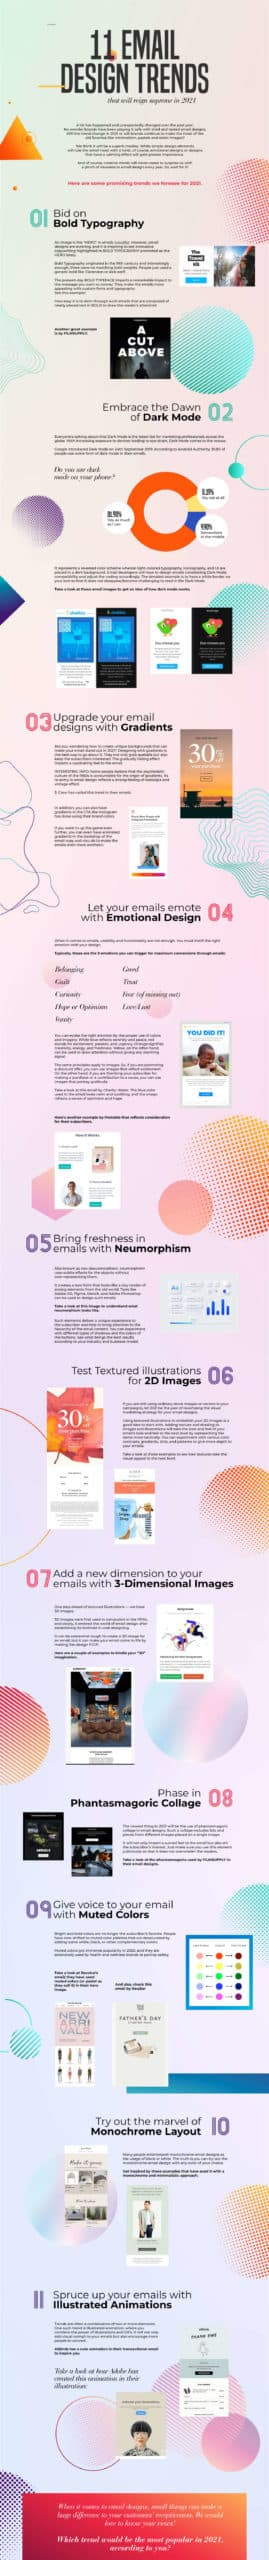 Email Design Trends Infographic